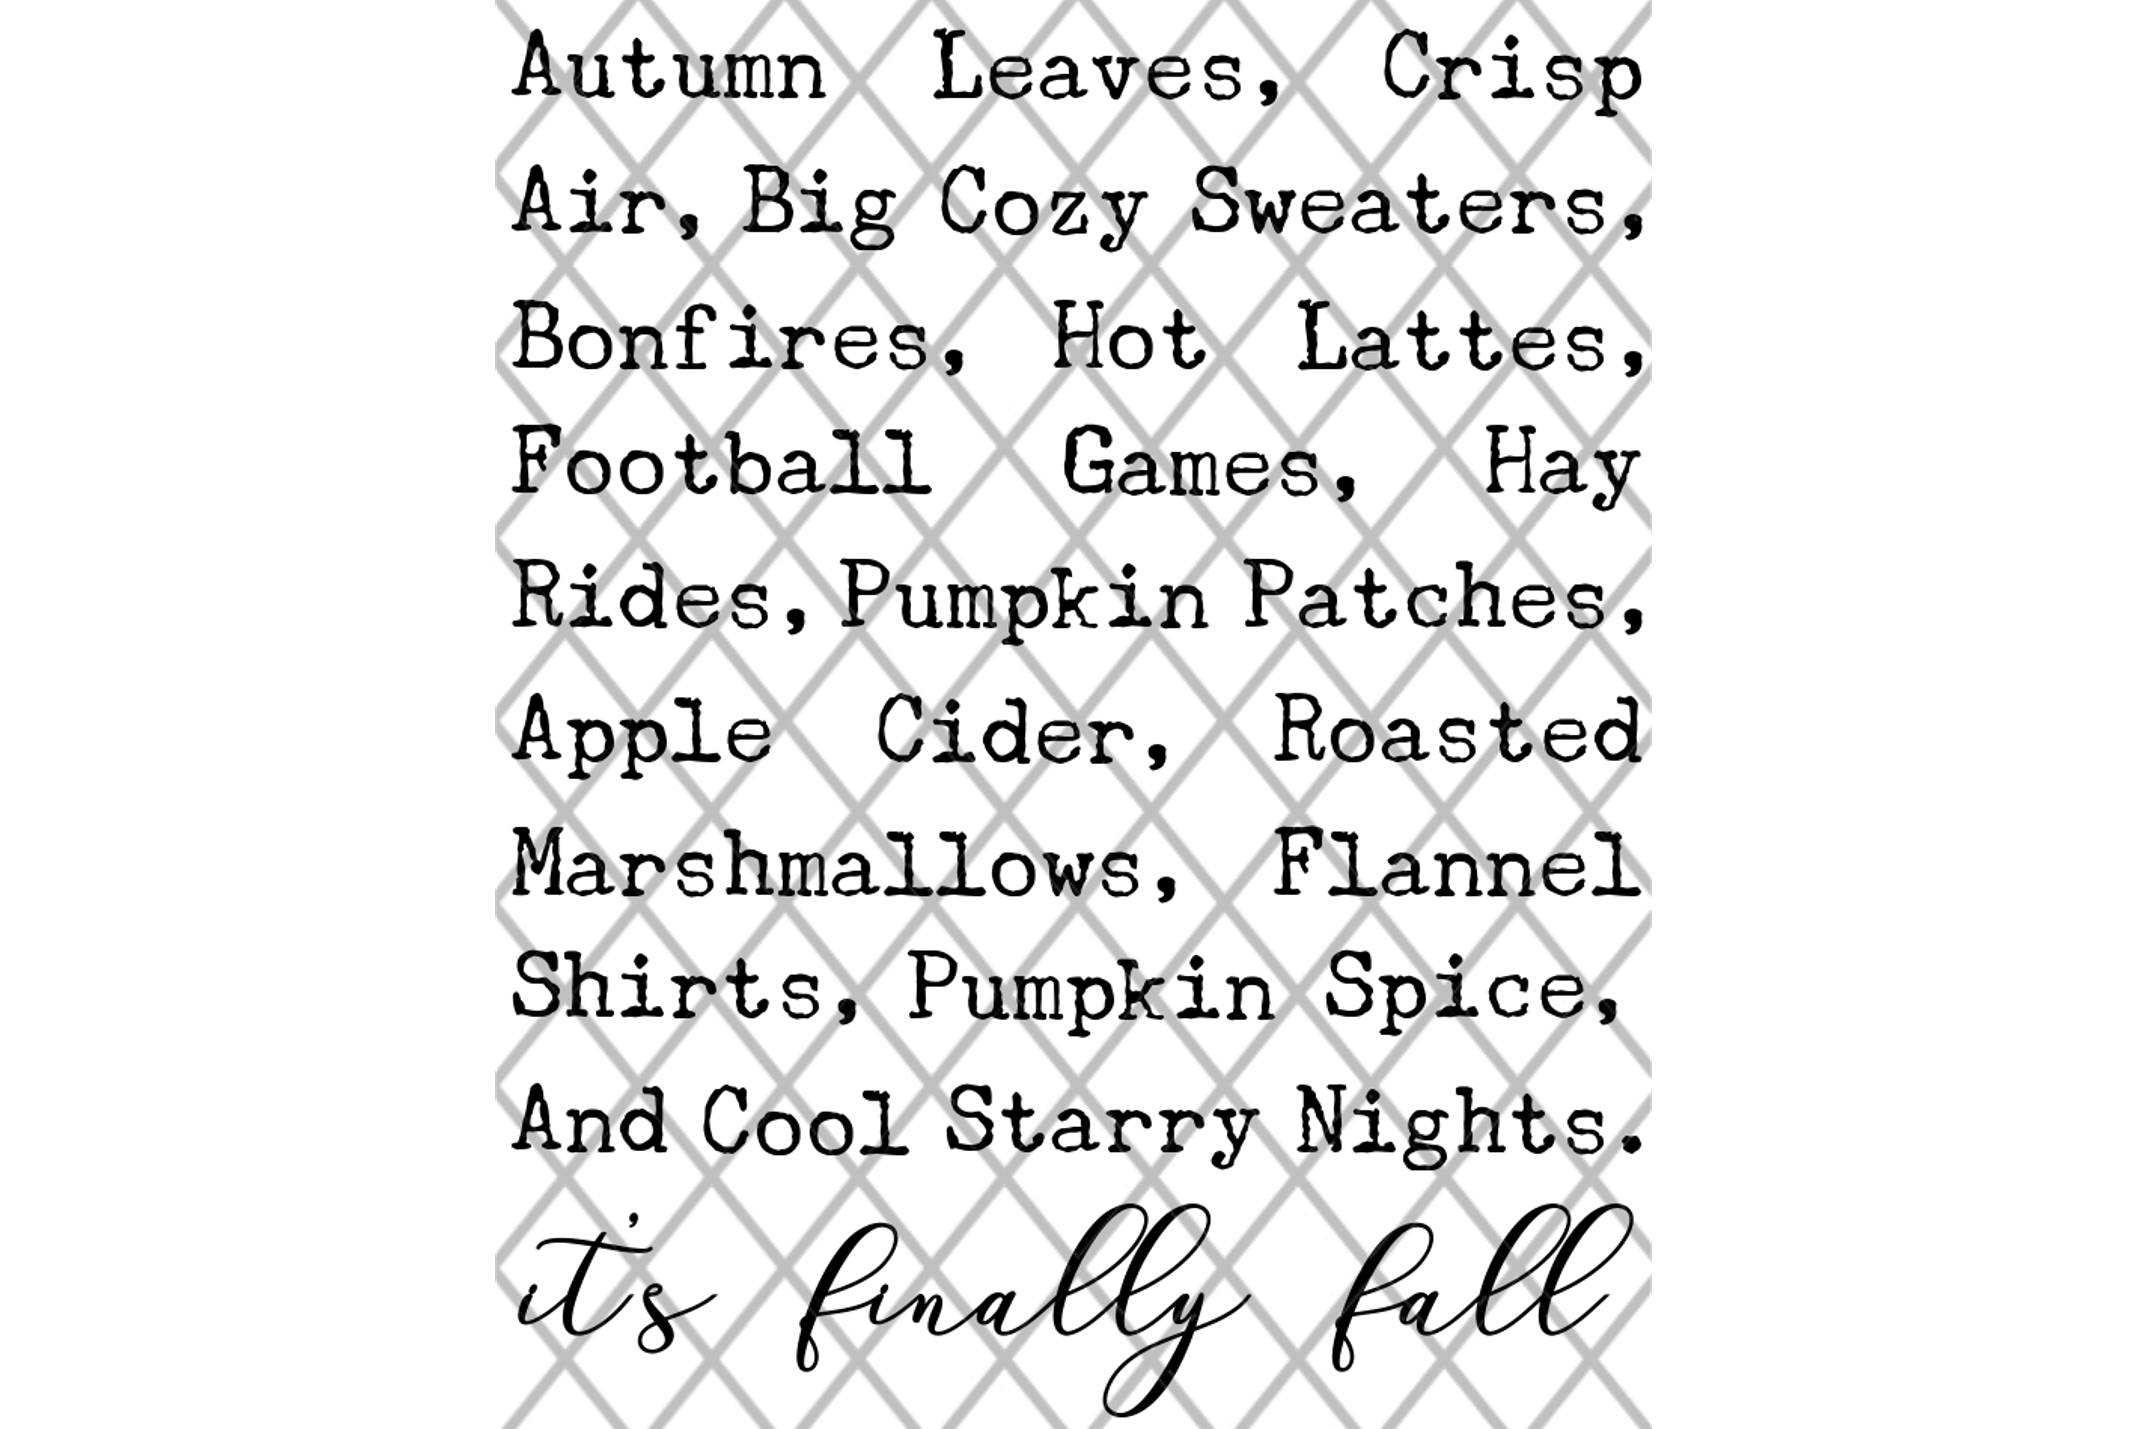 It's Finally Fall SVG Sign Design example image 3